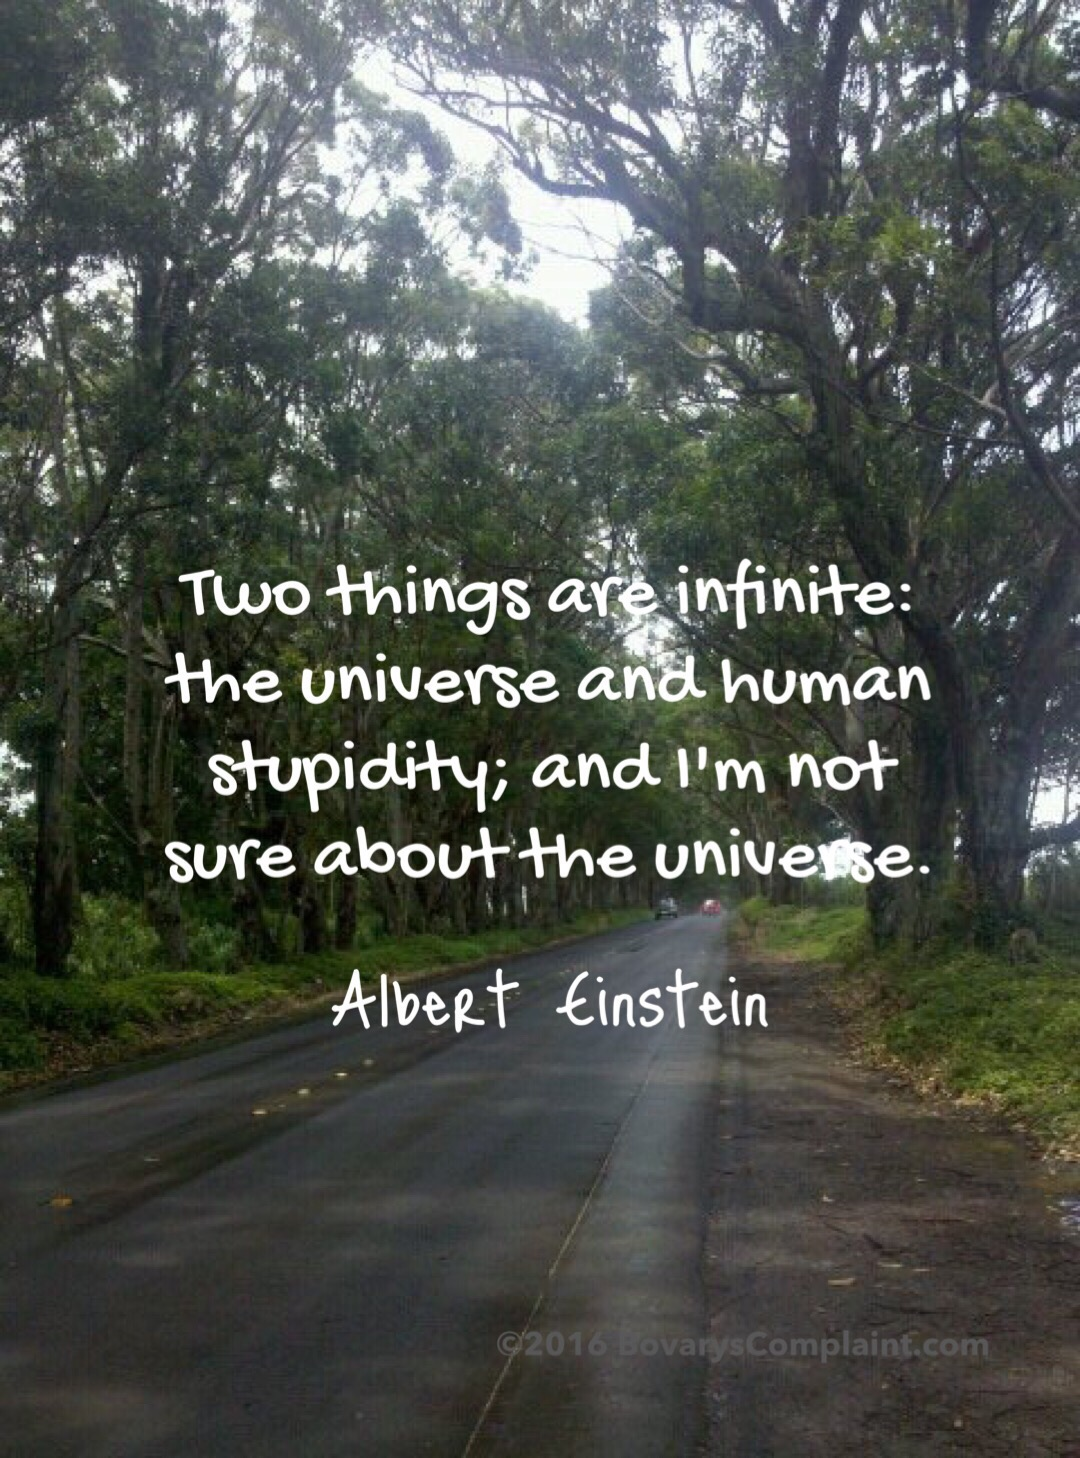 Einstein, the Universe, and Human Stupidity